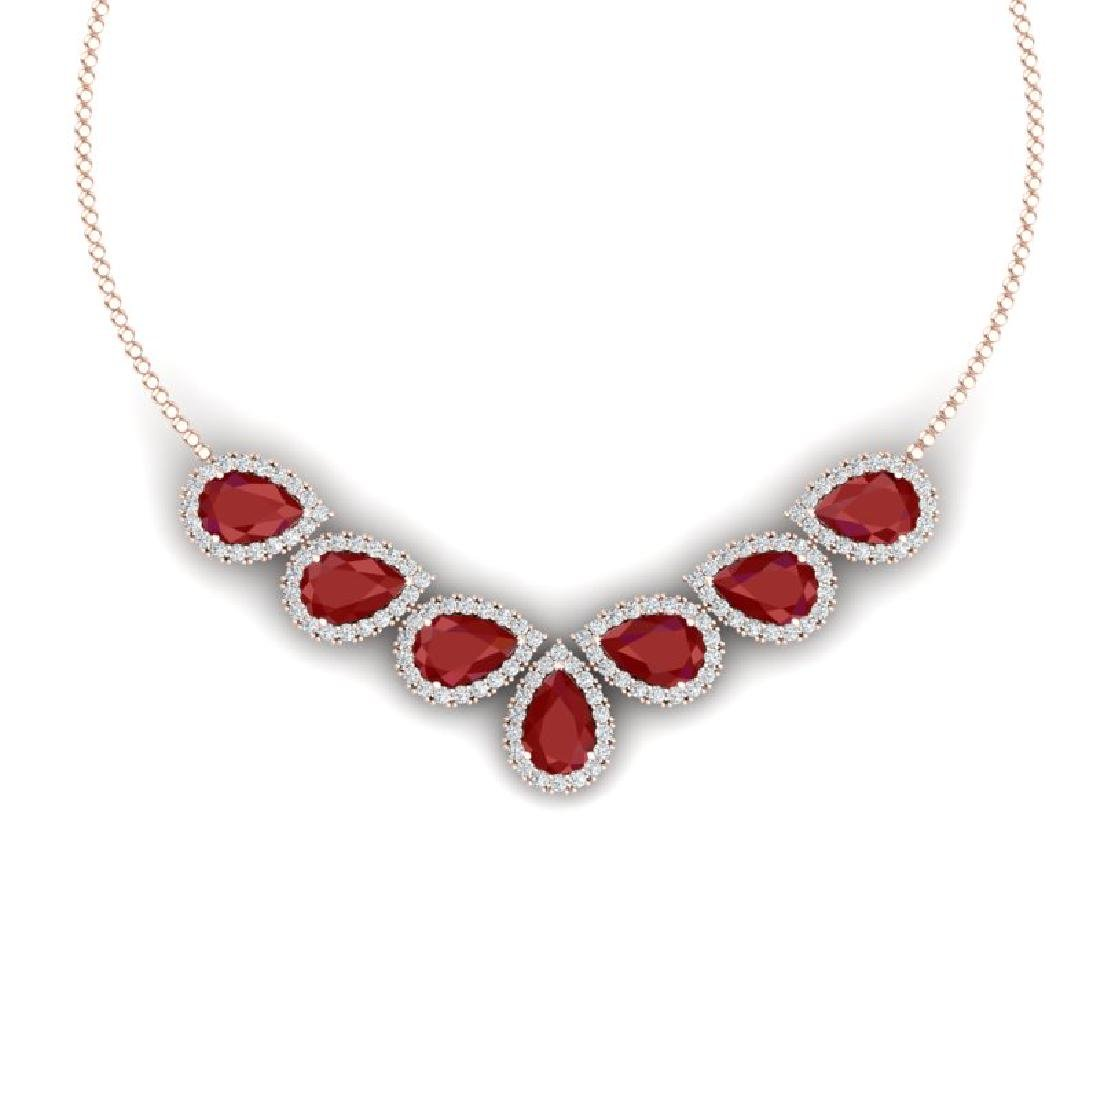 34.72 CTW Royalty Ruby & VS Diamond Necklace 18K Rose